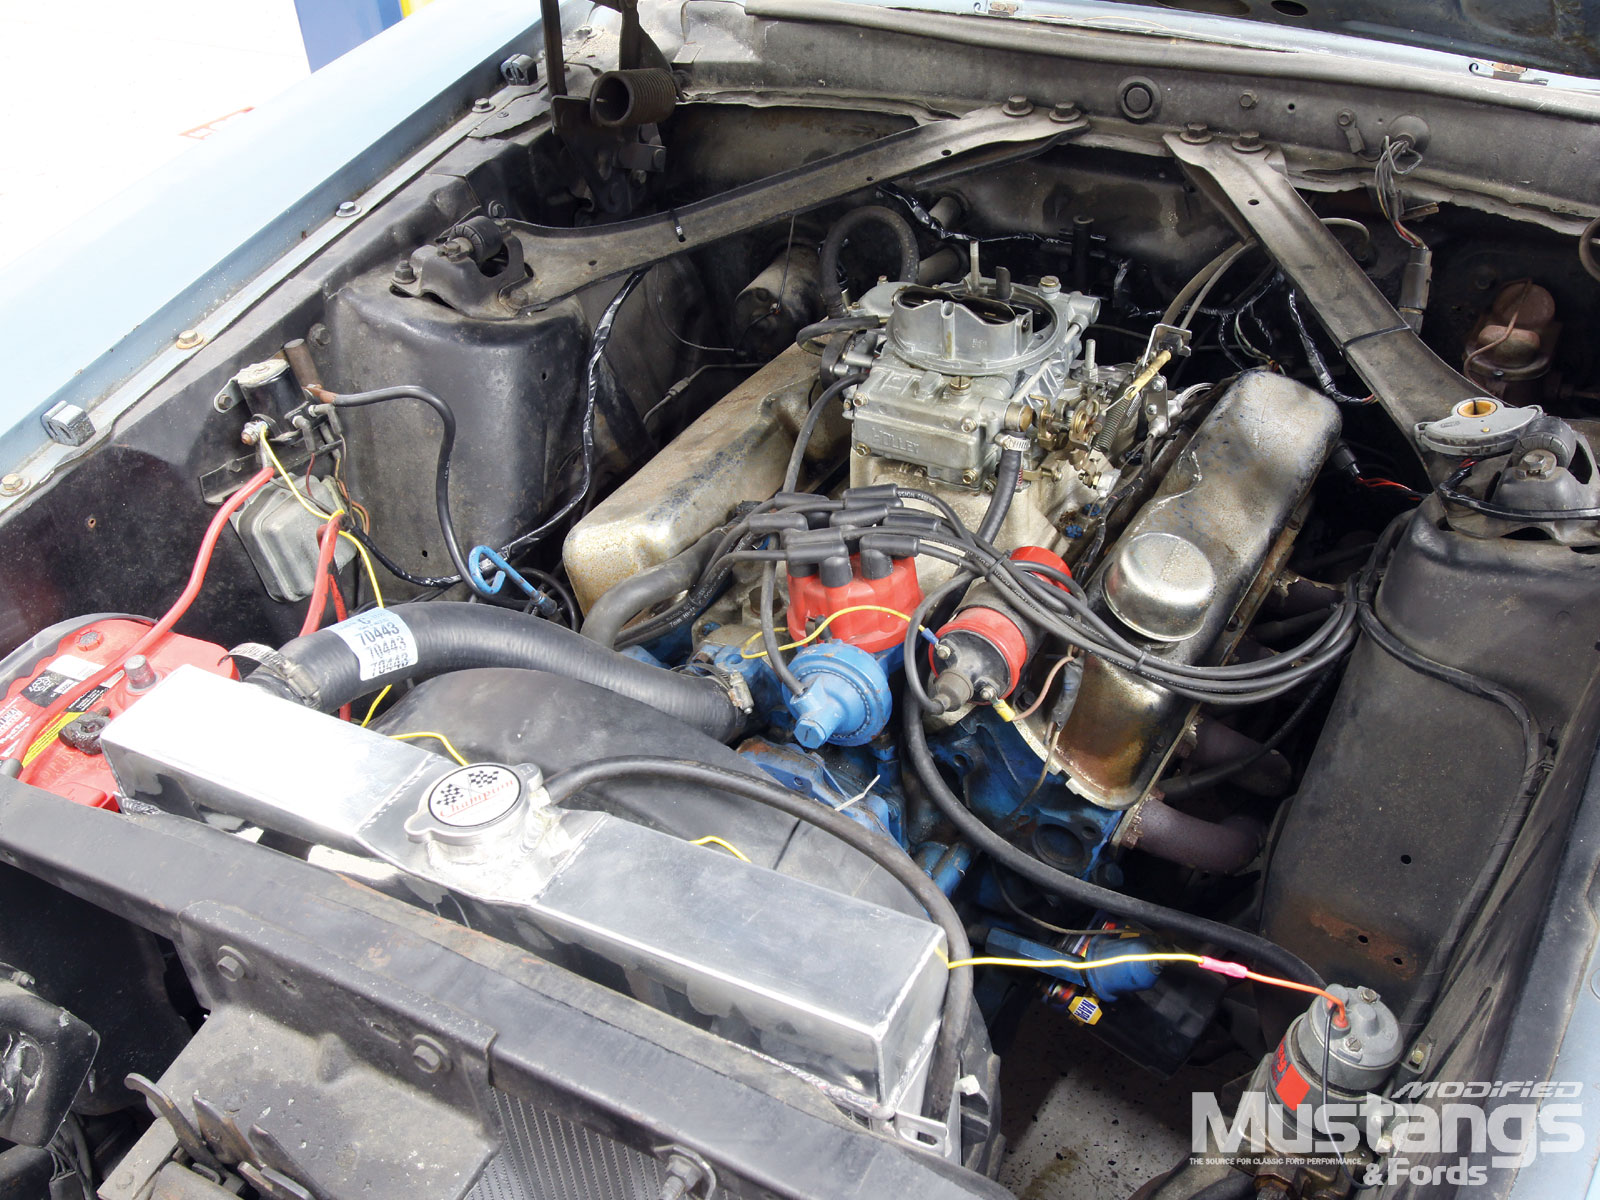 1970 Ford Mustang Project High School Hauler Engine Bay